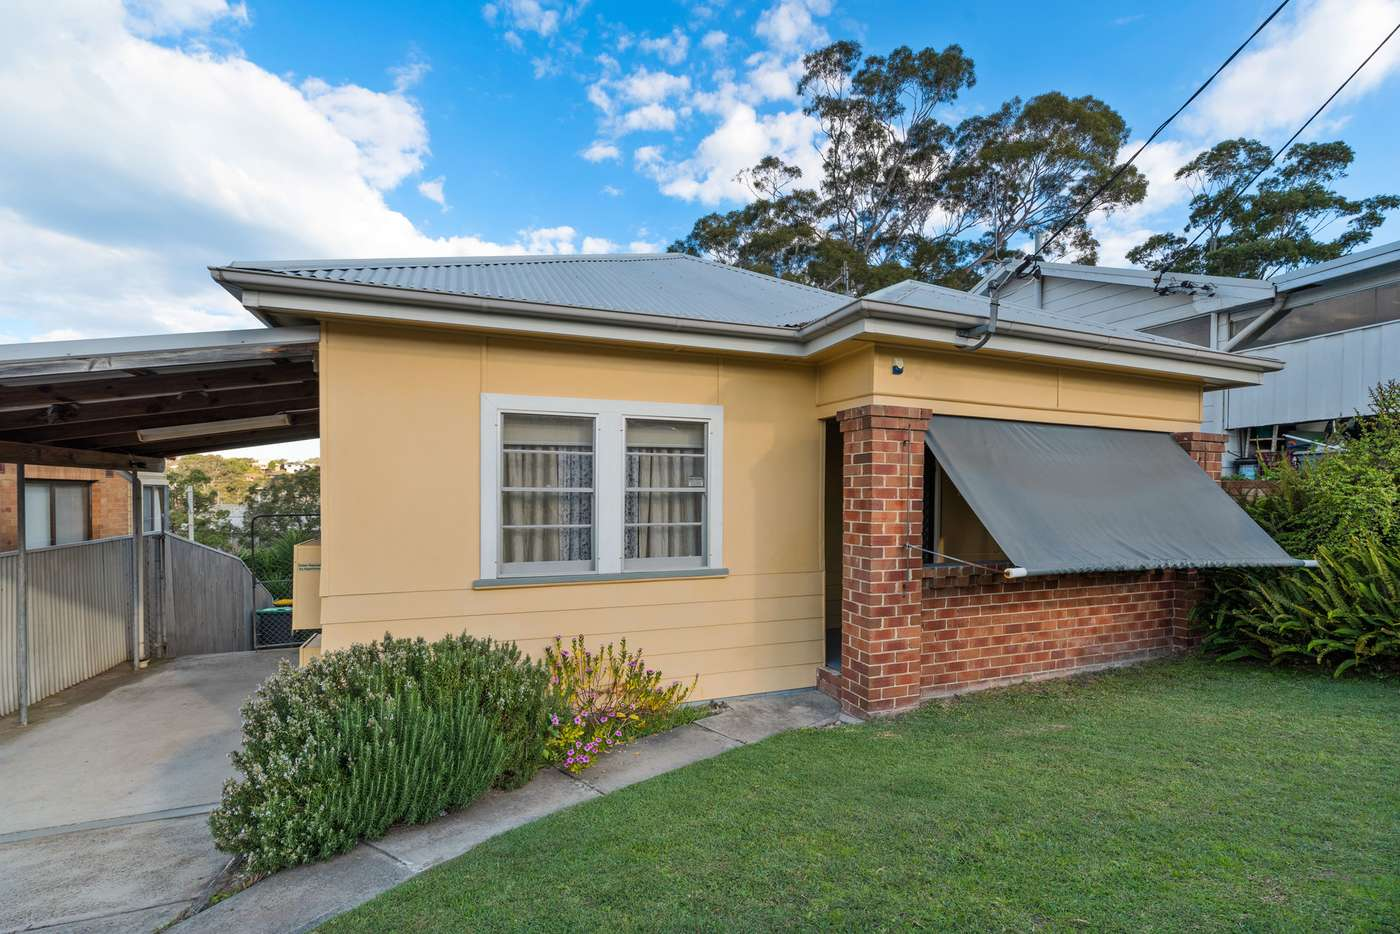 Main view of Homely house listing, 25 Grinsell Street, New Lambton NSW 2305